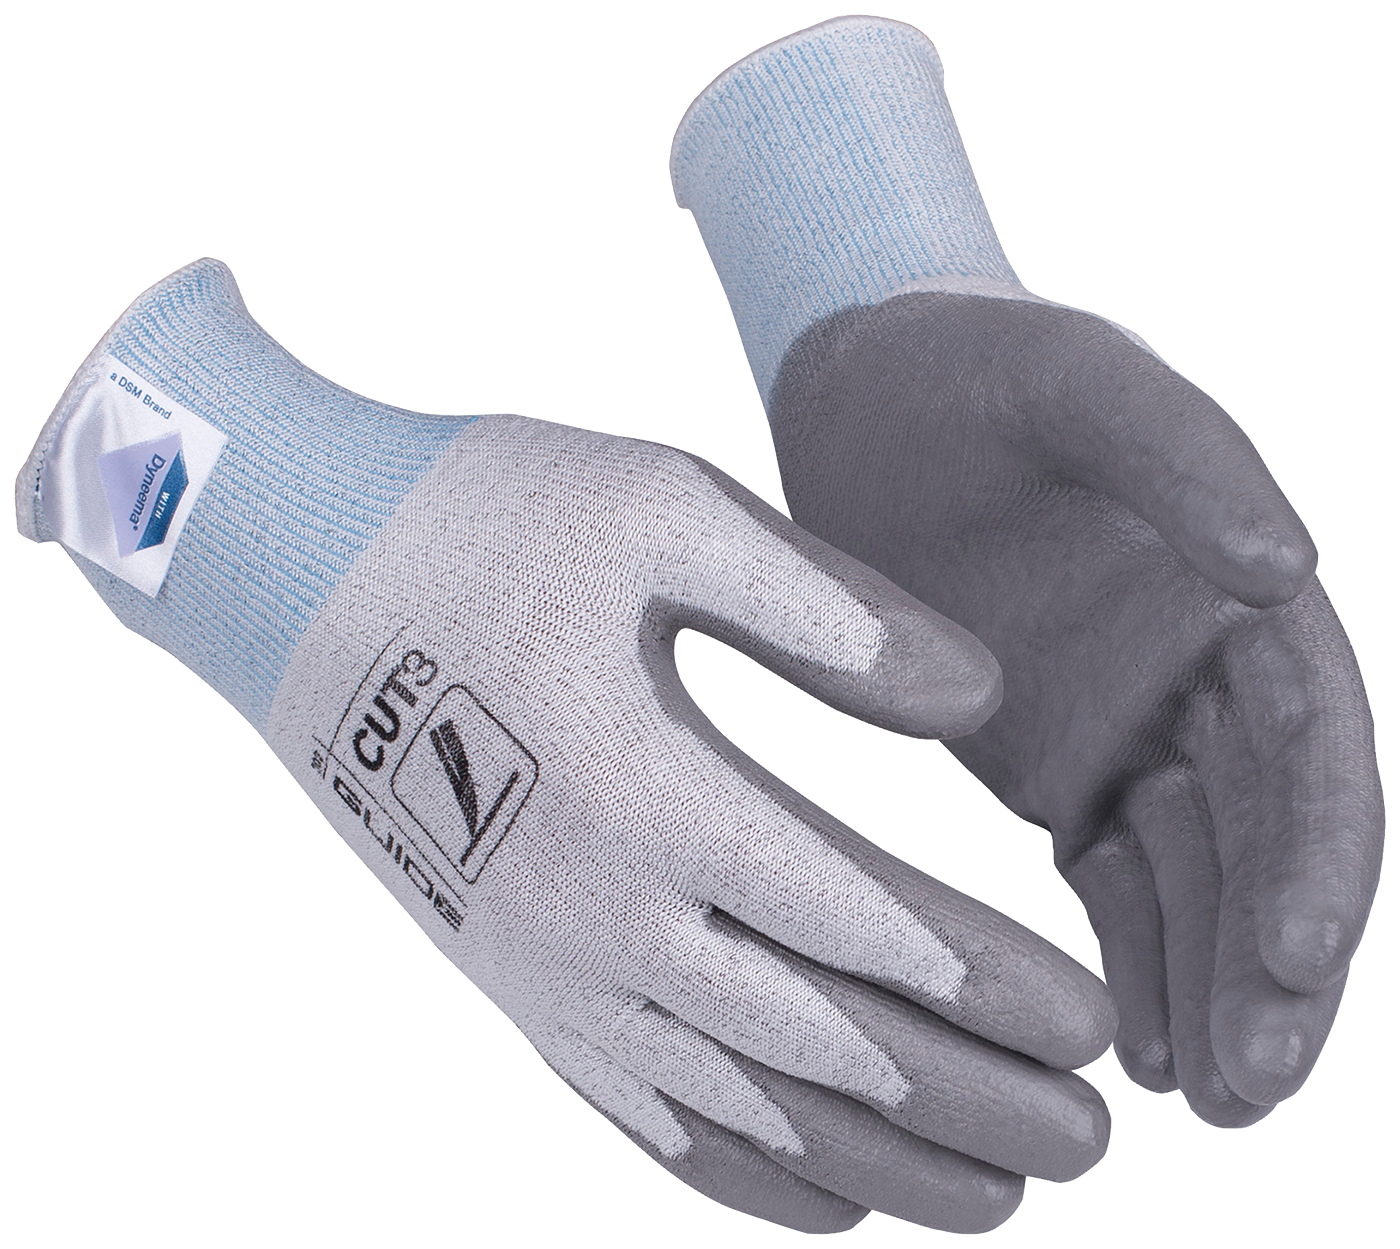 Cut Protection Glove GUIDE 302